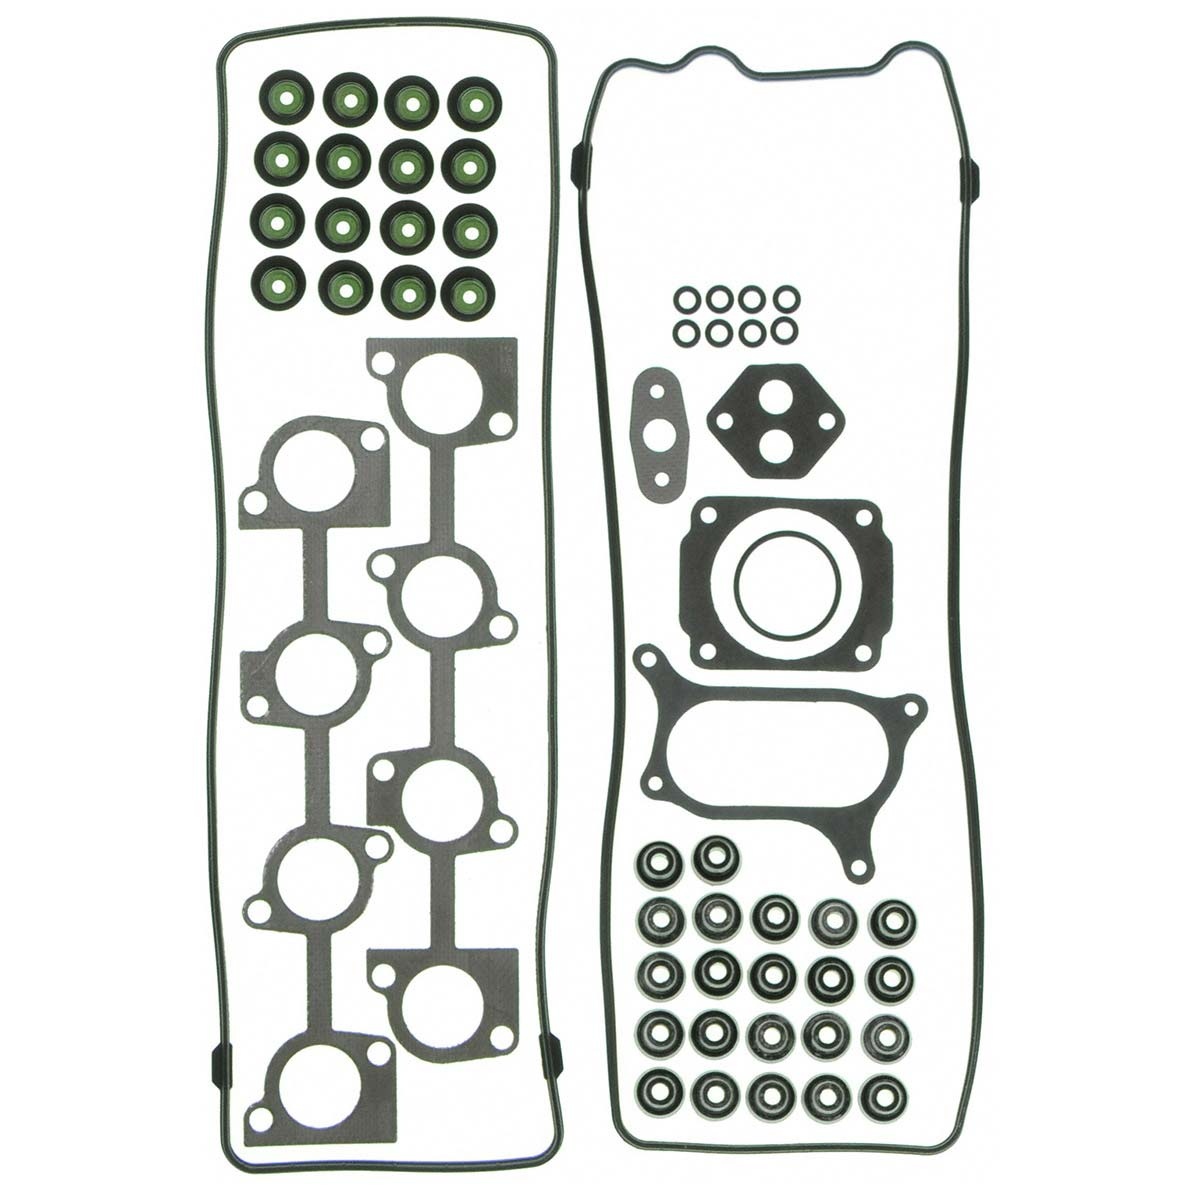 Ford Expedition Cylinder Head Gasket Sets Parts View Online Part Sale